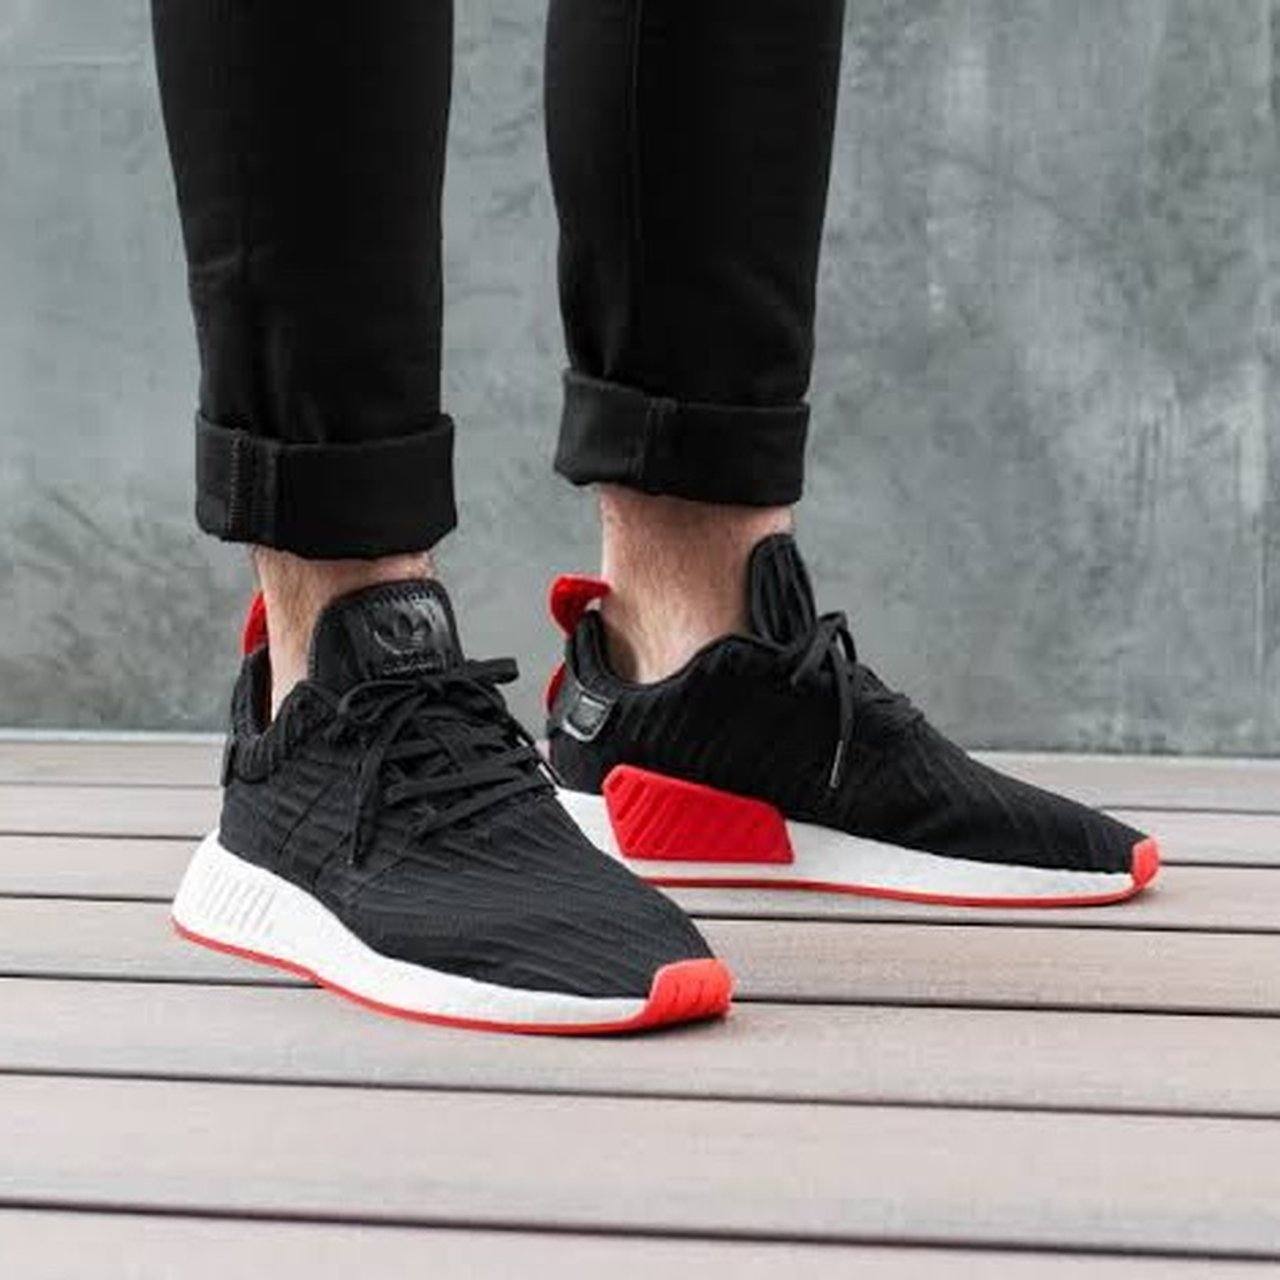 Adidas NMD R2 core Black/Red Size US 10